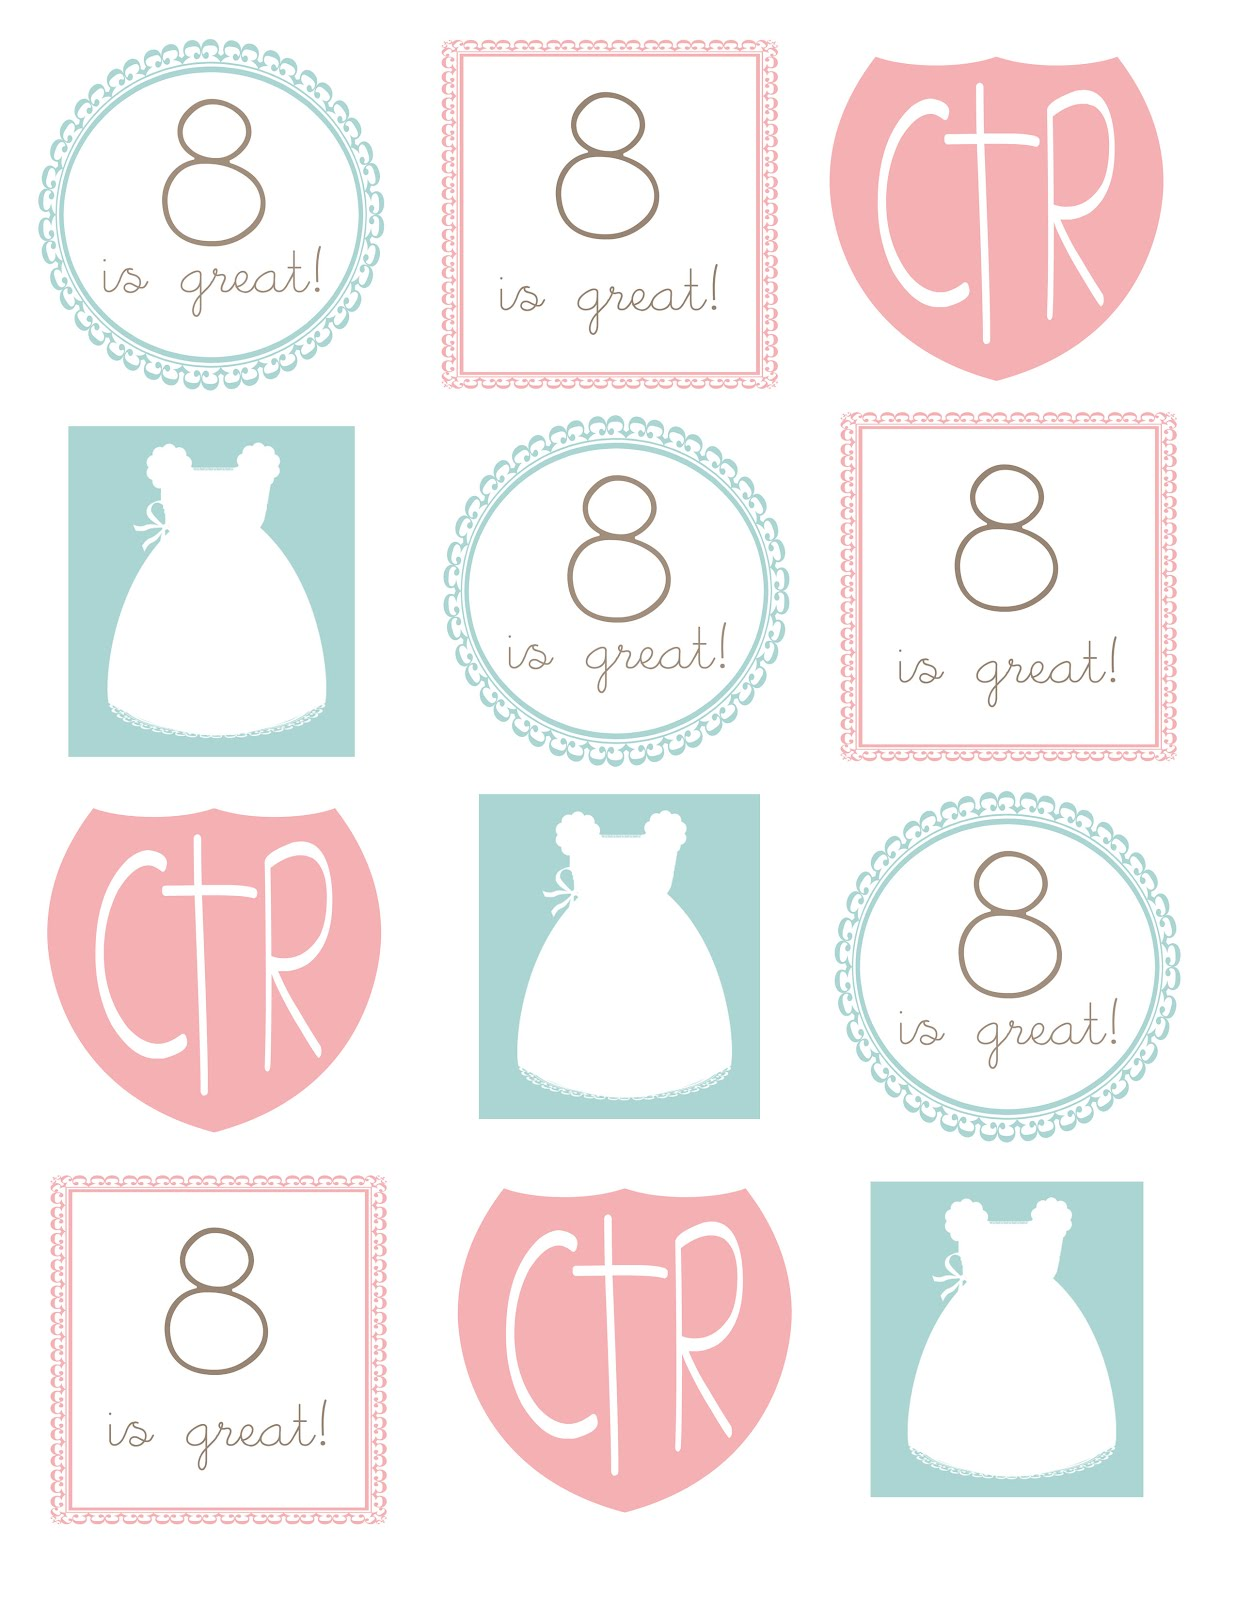 This is an image of Playful Free Lds Printables